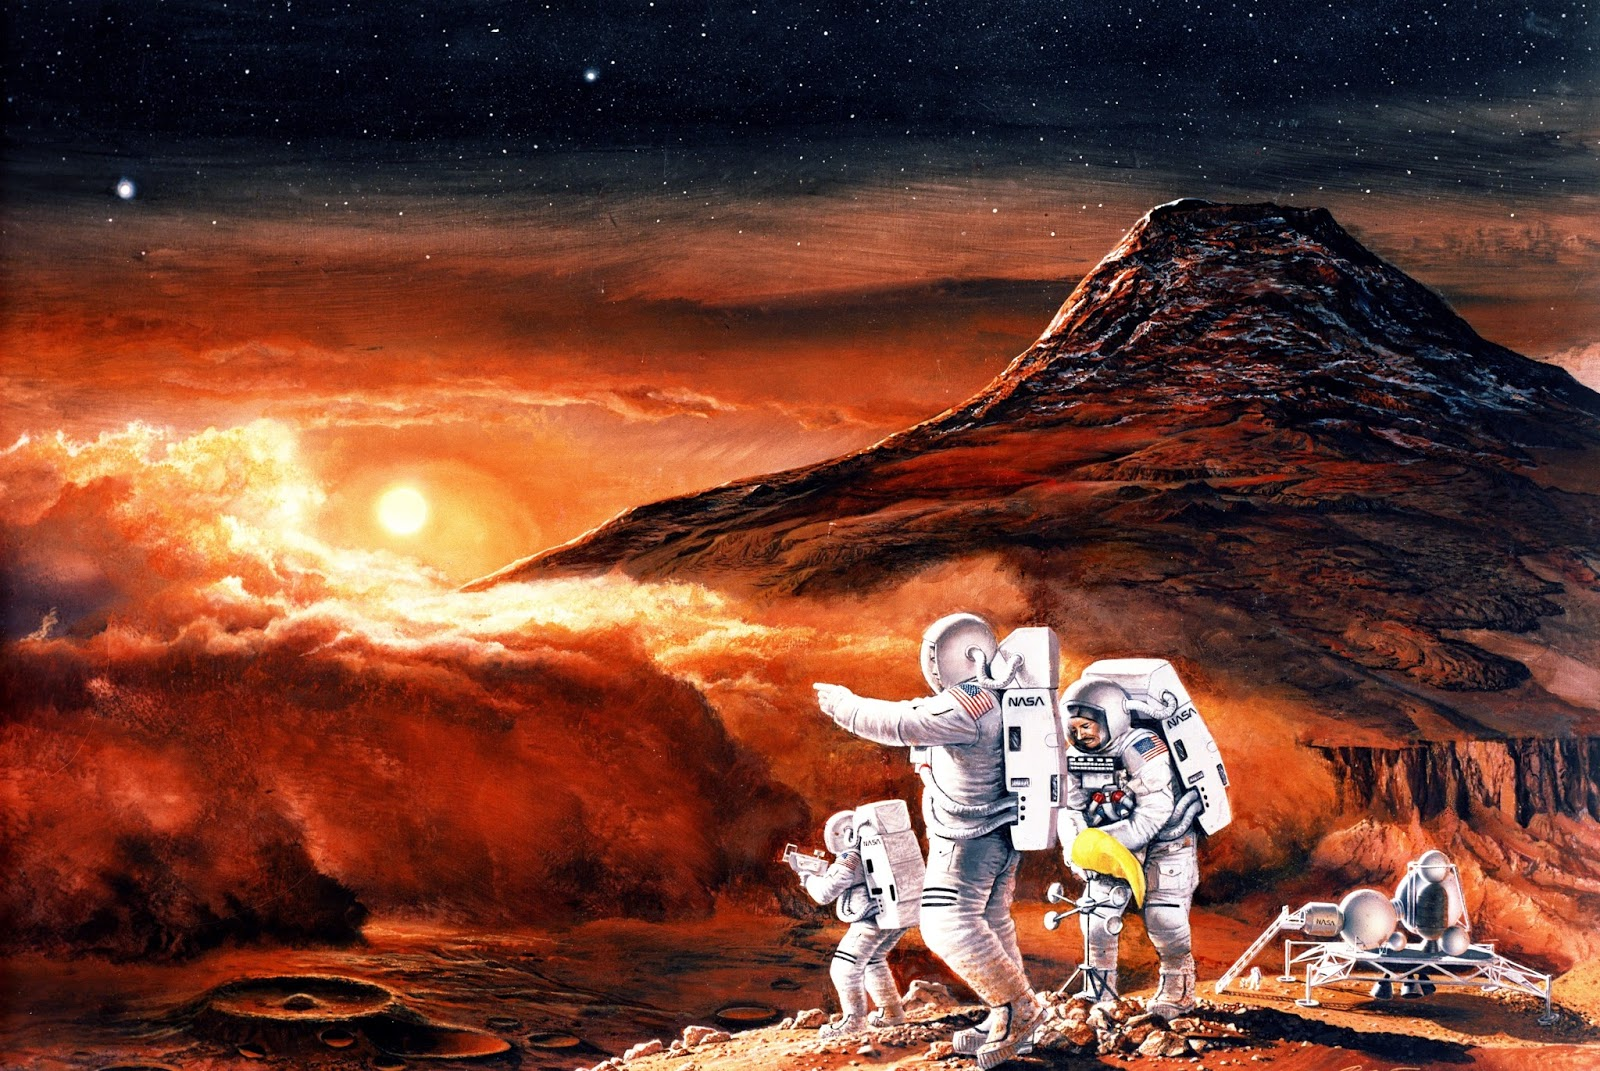 Astronauts exploring Mars by Ren Wicks